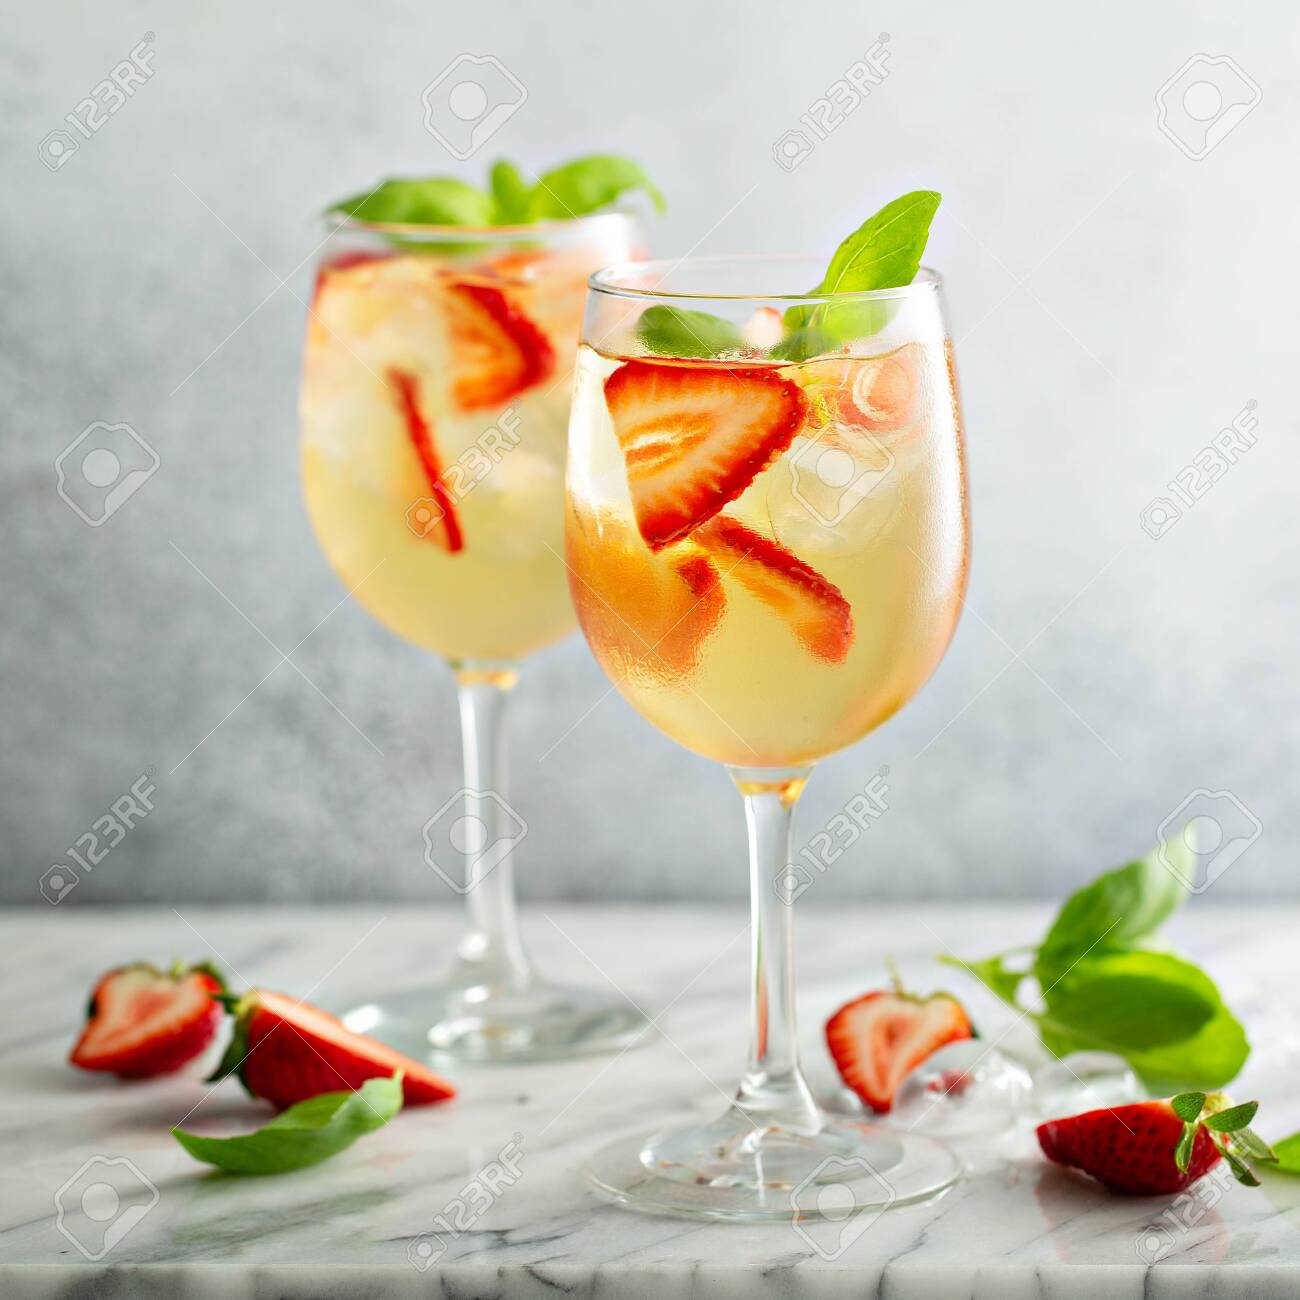 Summer white sangria with strawberries - 127689635